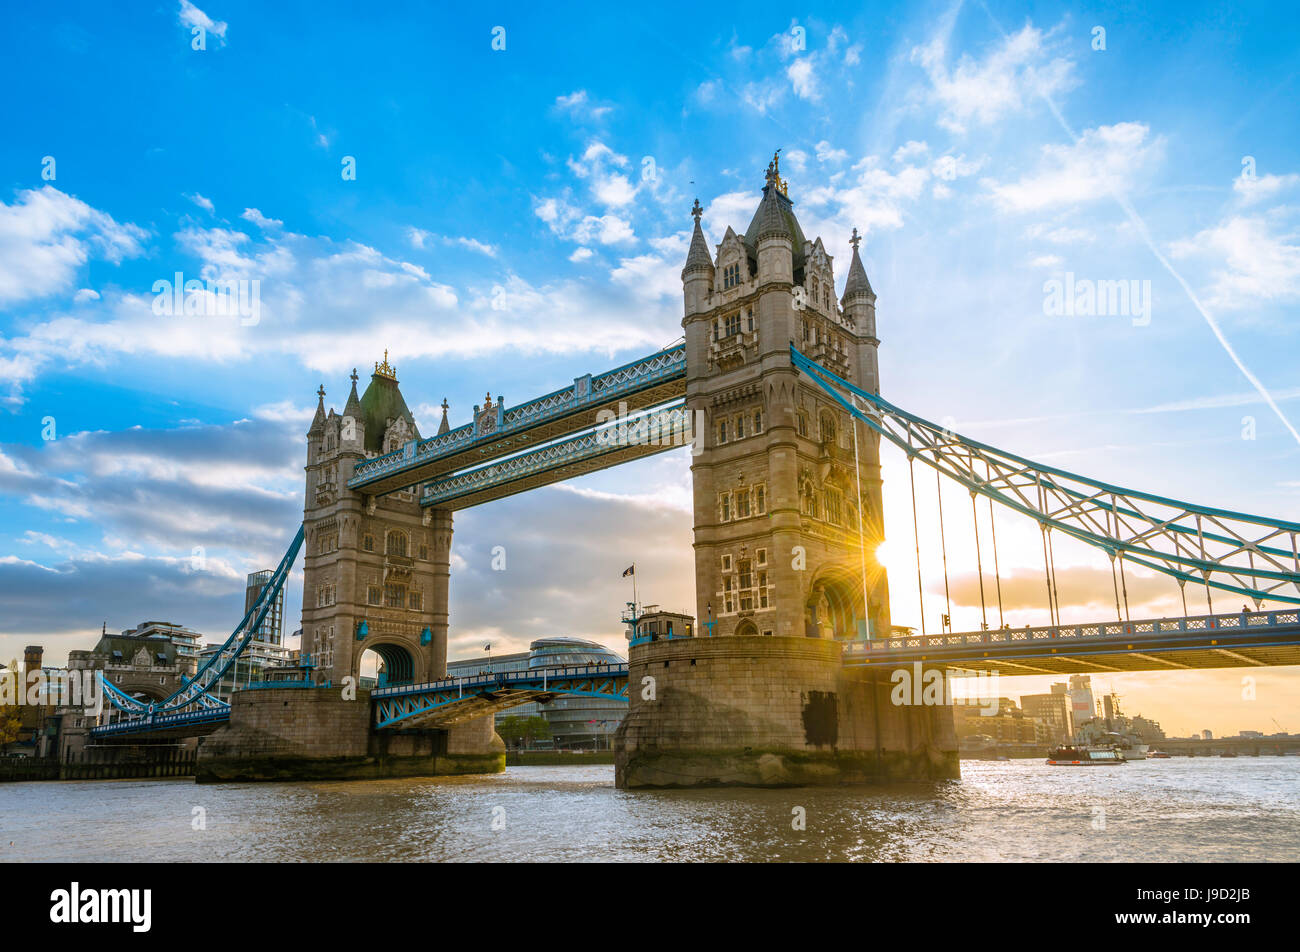 Tower Bridge sobre el Támesis al atardecer, London, England, Reino Unido Foto de stock